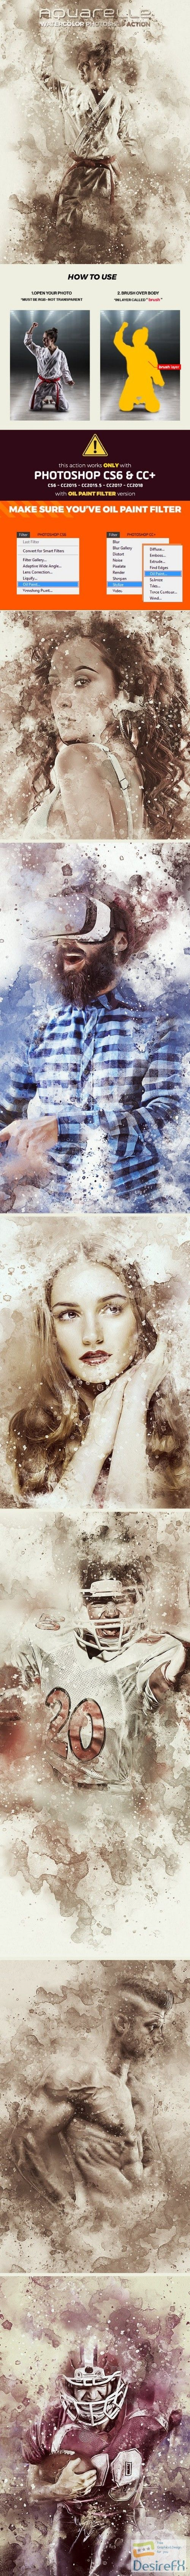 Graphicriver Aquarelle Watercolor Photoshop Action 21643236